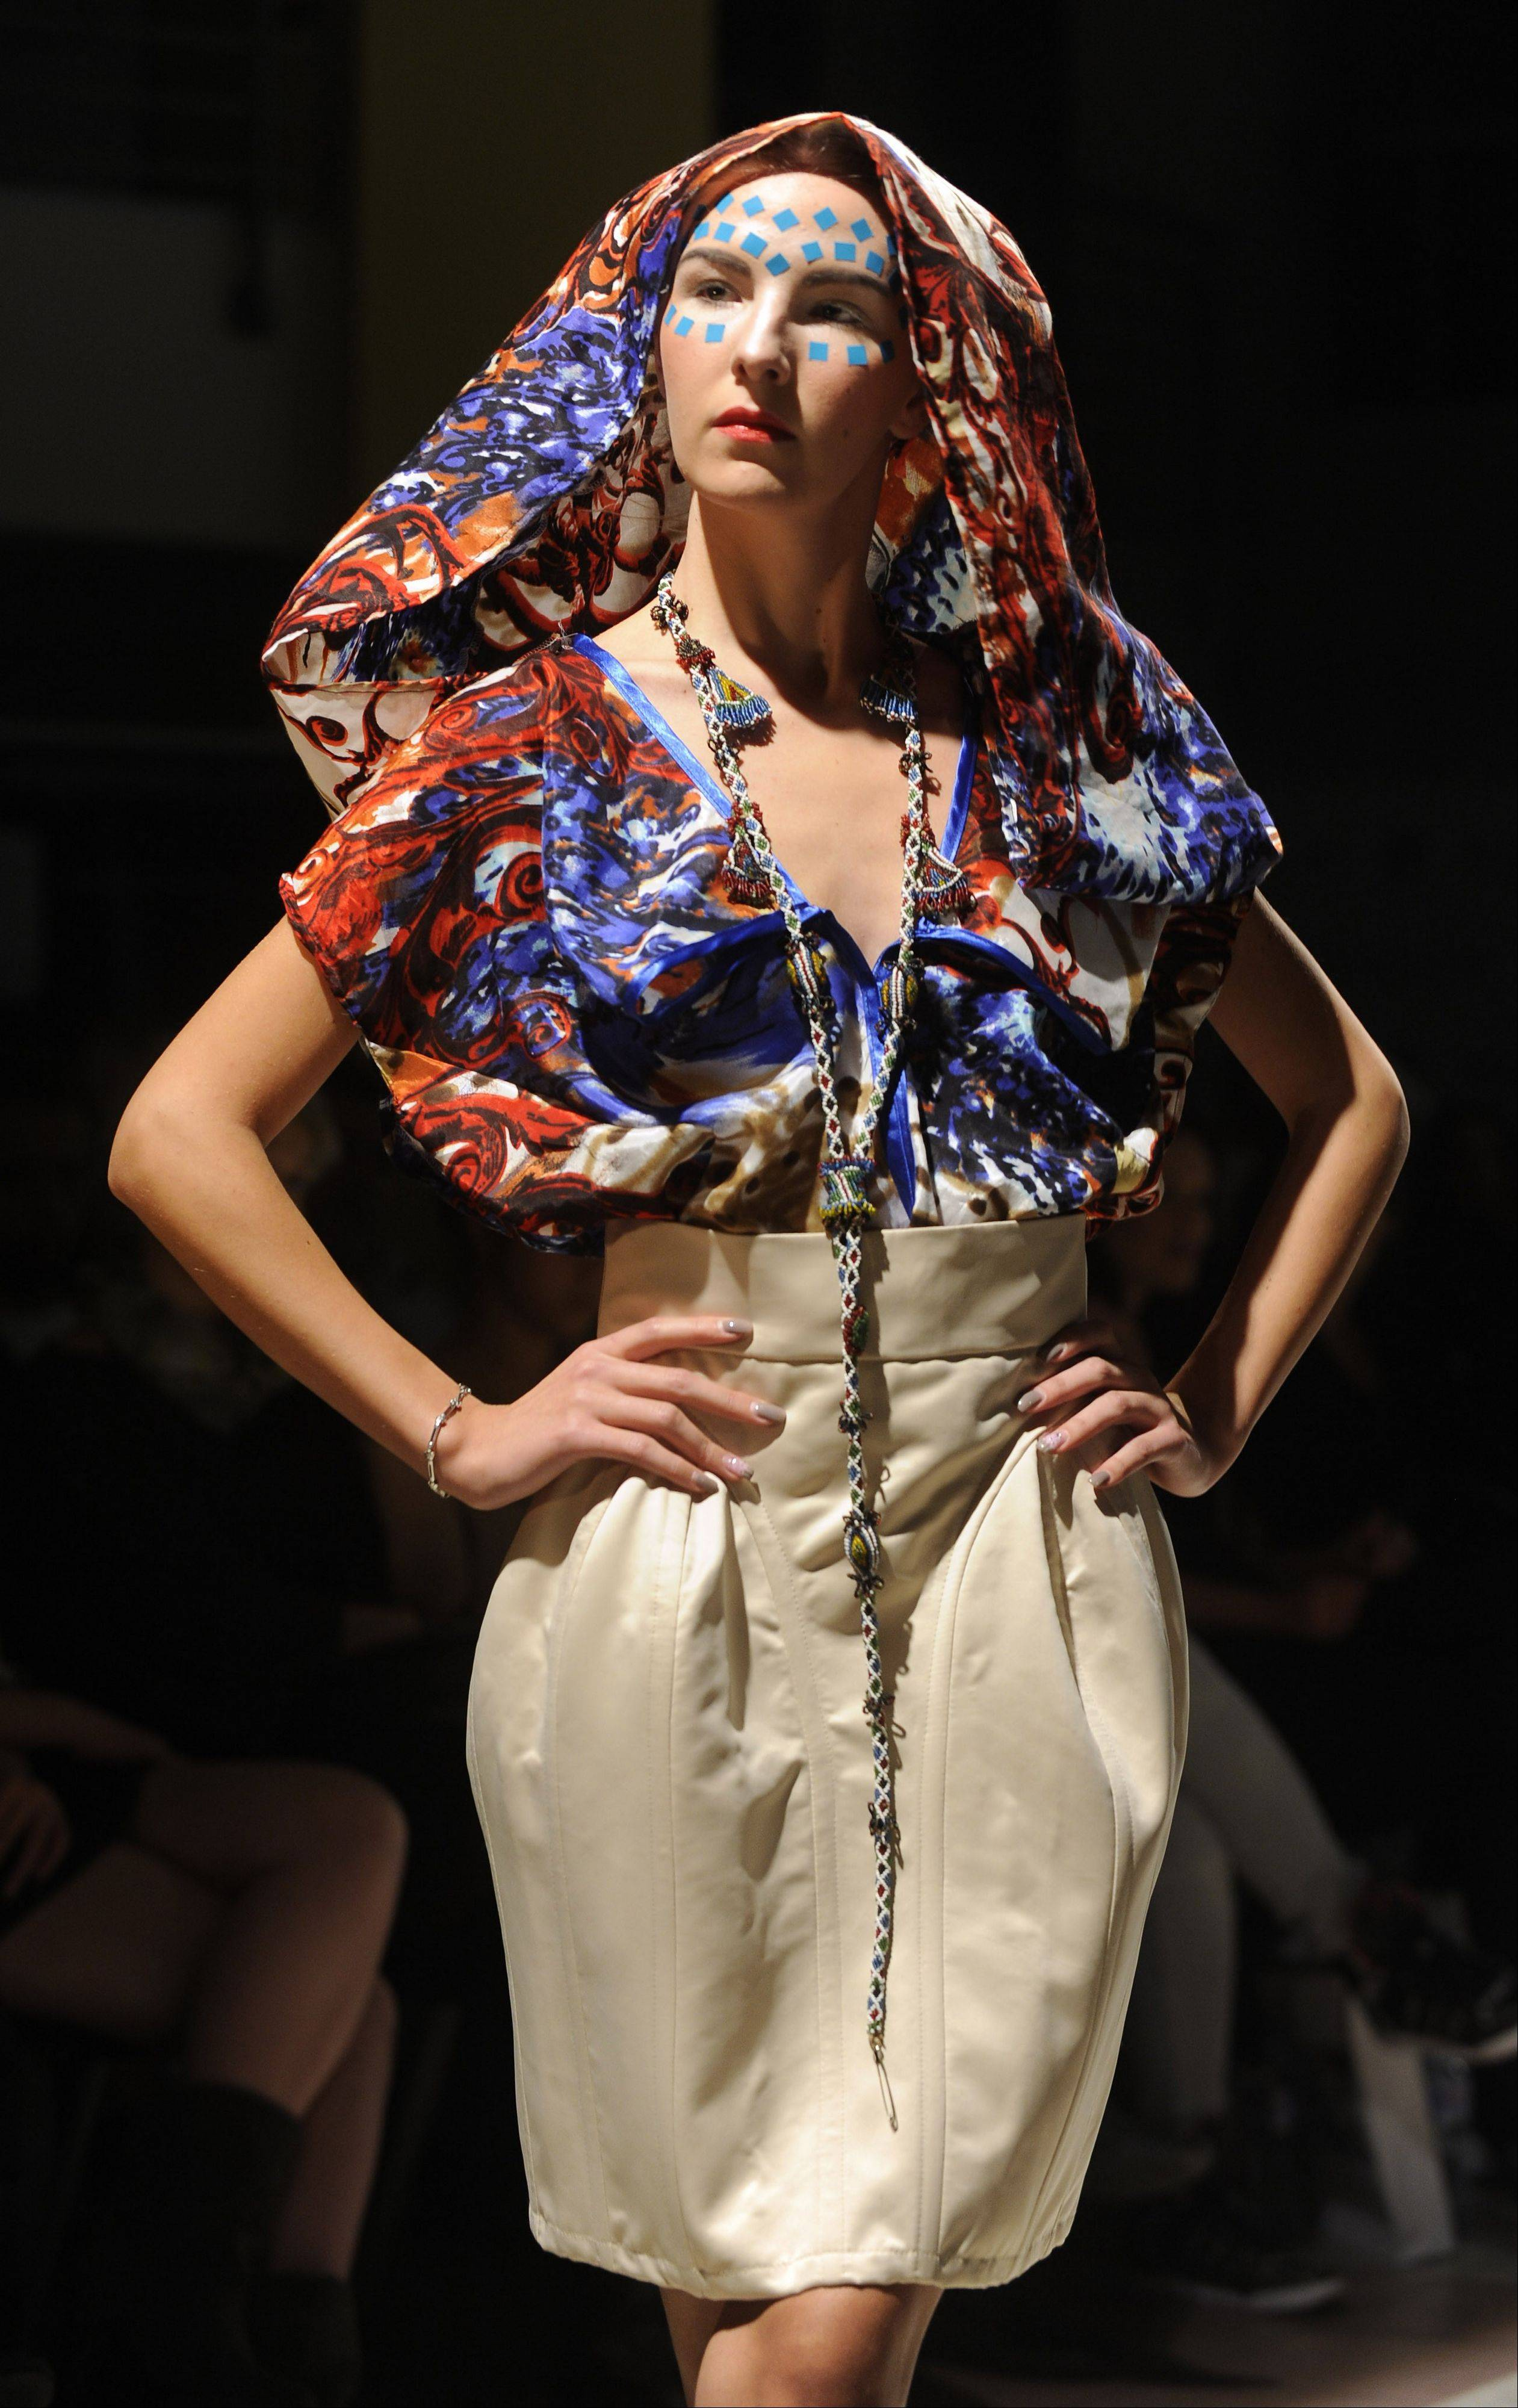 A model displays a creation of Macedonian fashion designer Olgica Gjorgieva, during Skopje Fashion Weekend show in Macedonia's capital Skopje, Sunday, Oct. 23, 2011.